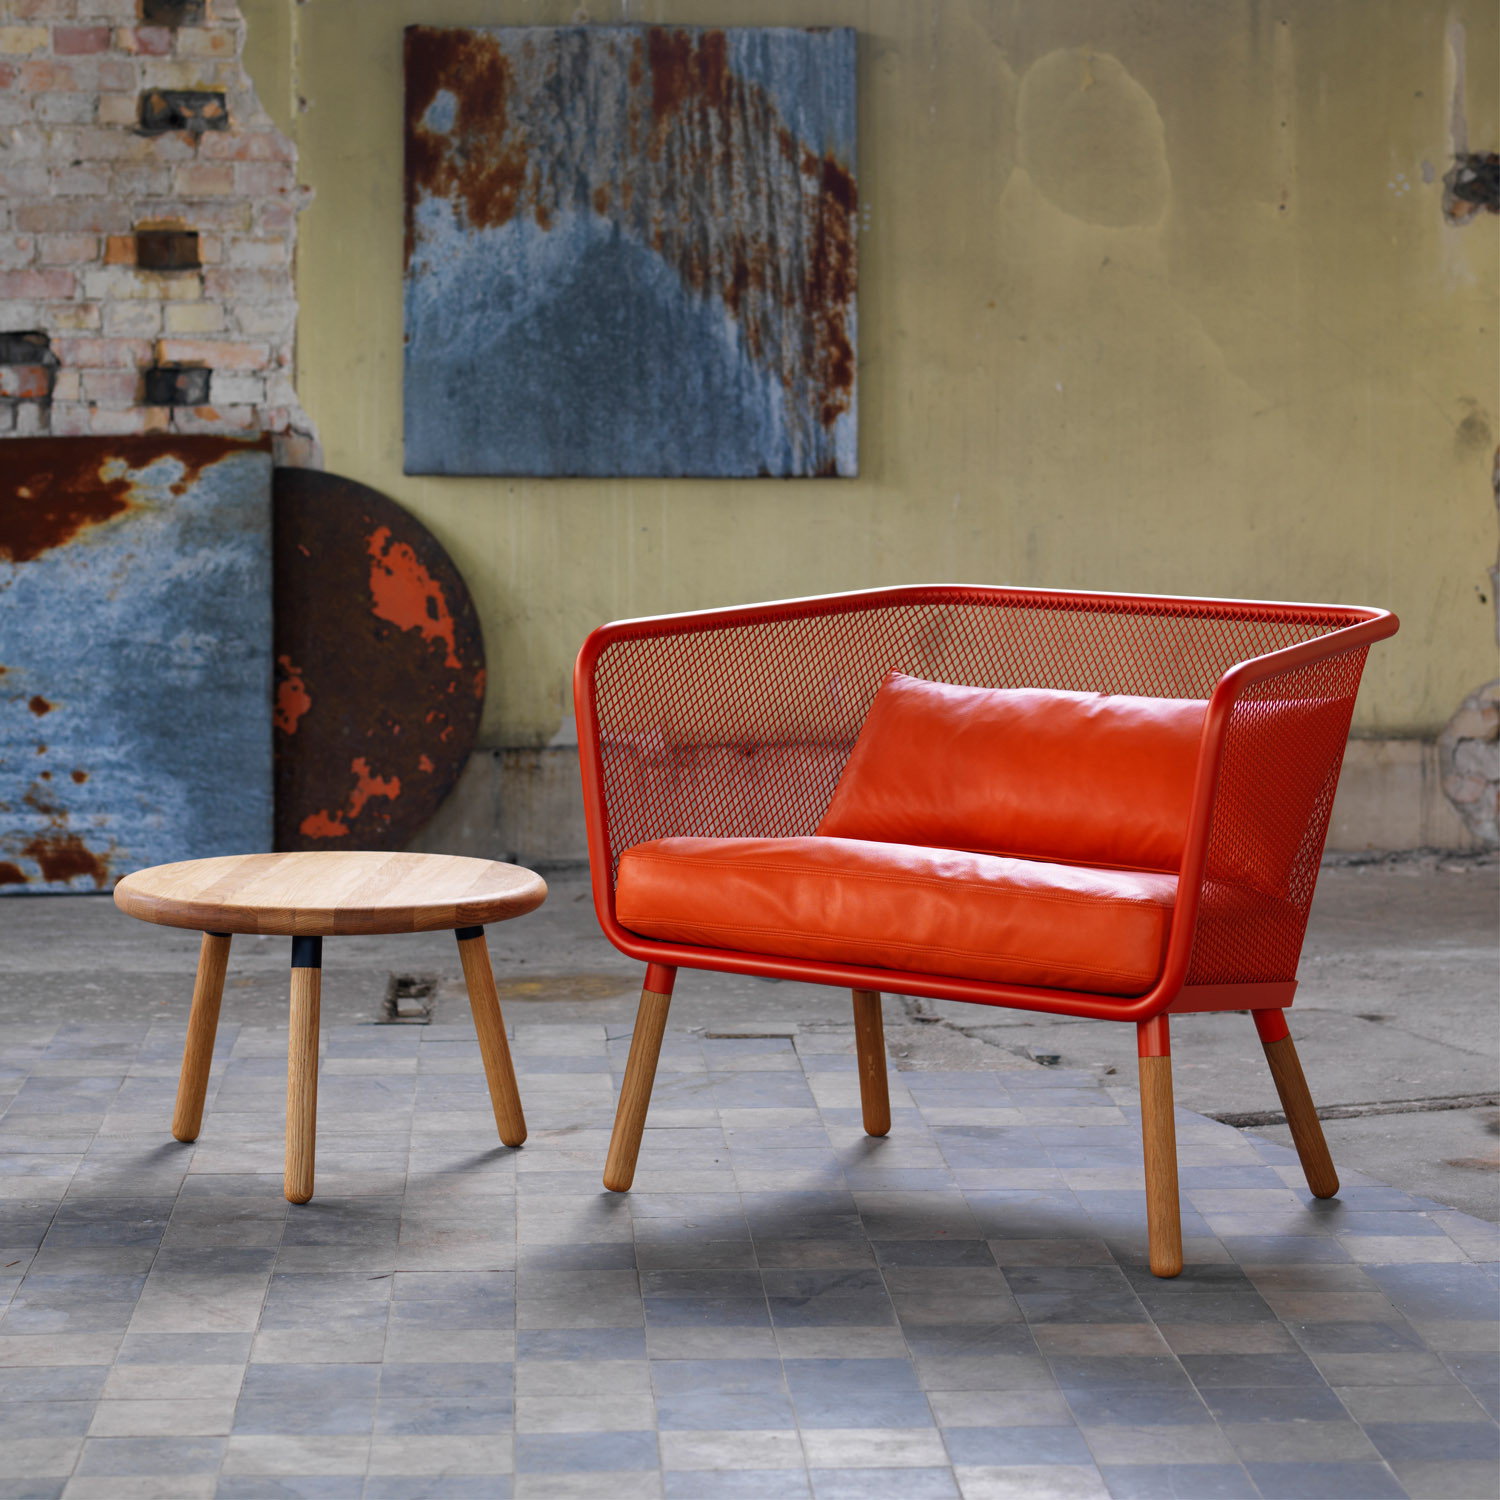 Honken Coffee Table with Armchair by Bla Station